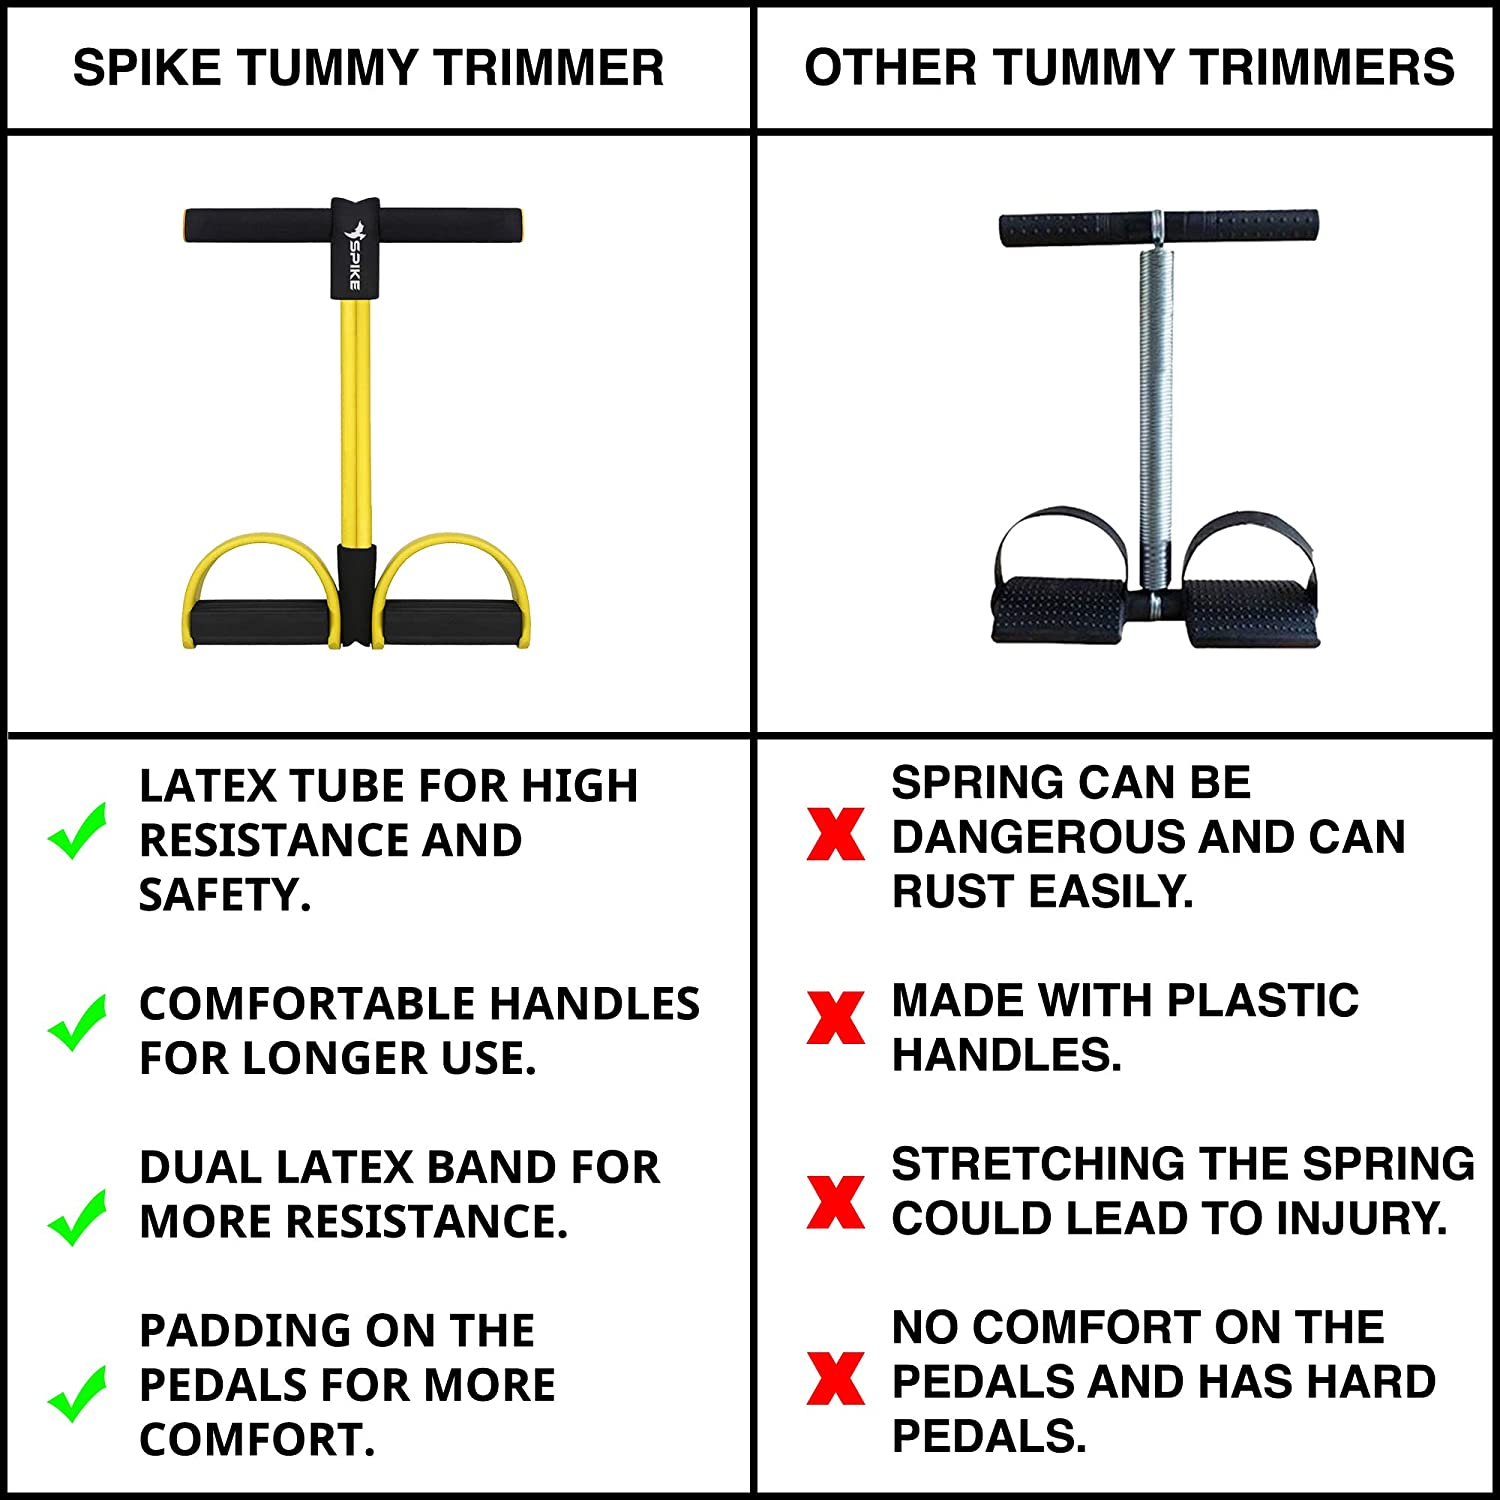 Spike Rubber Tummy Trimmer for Male and Female